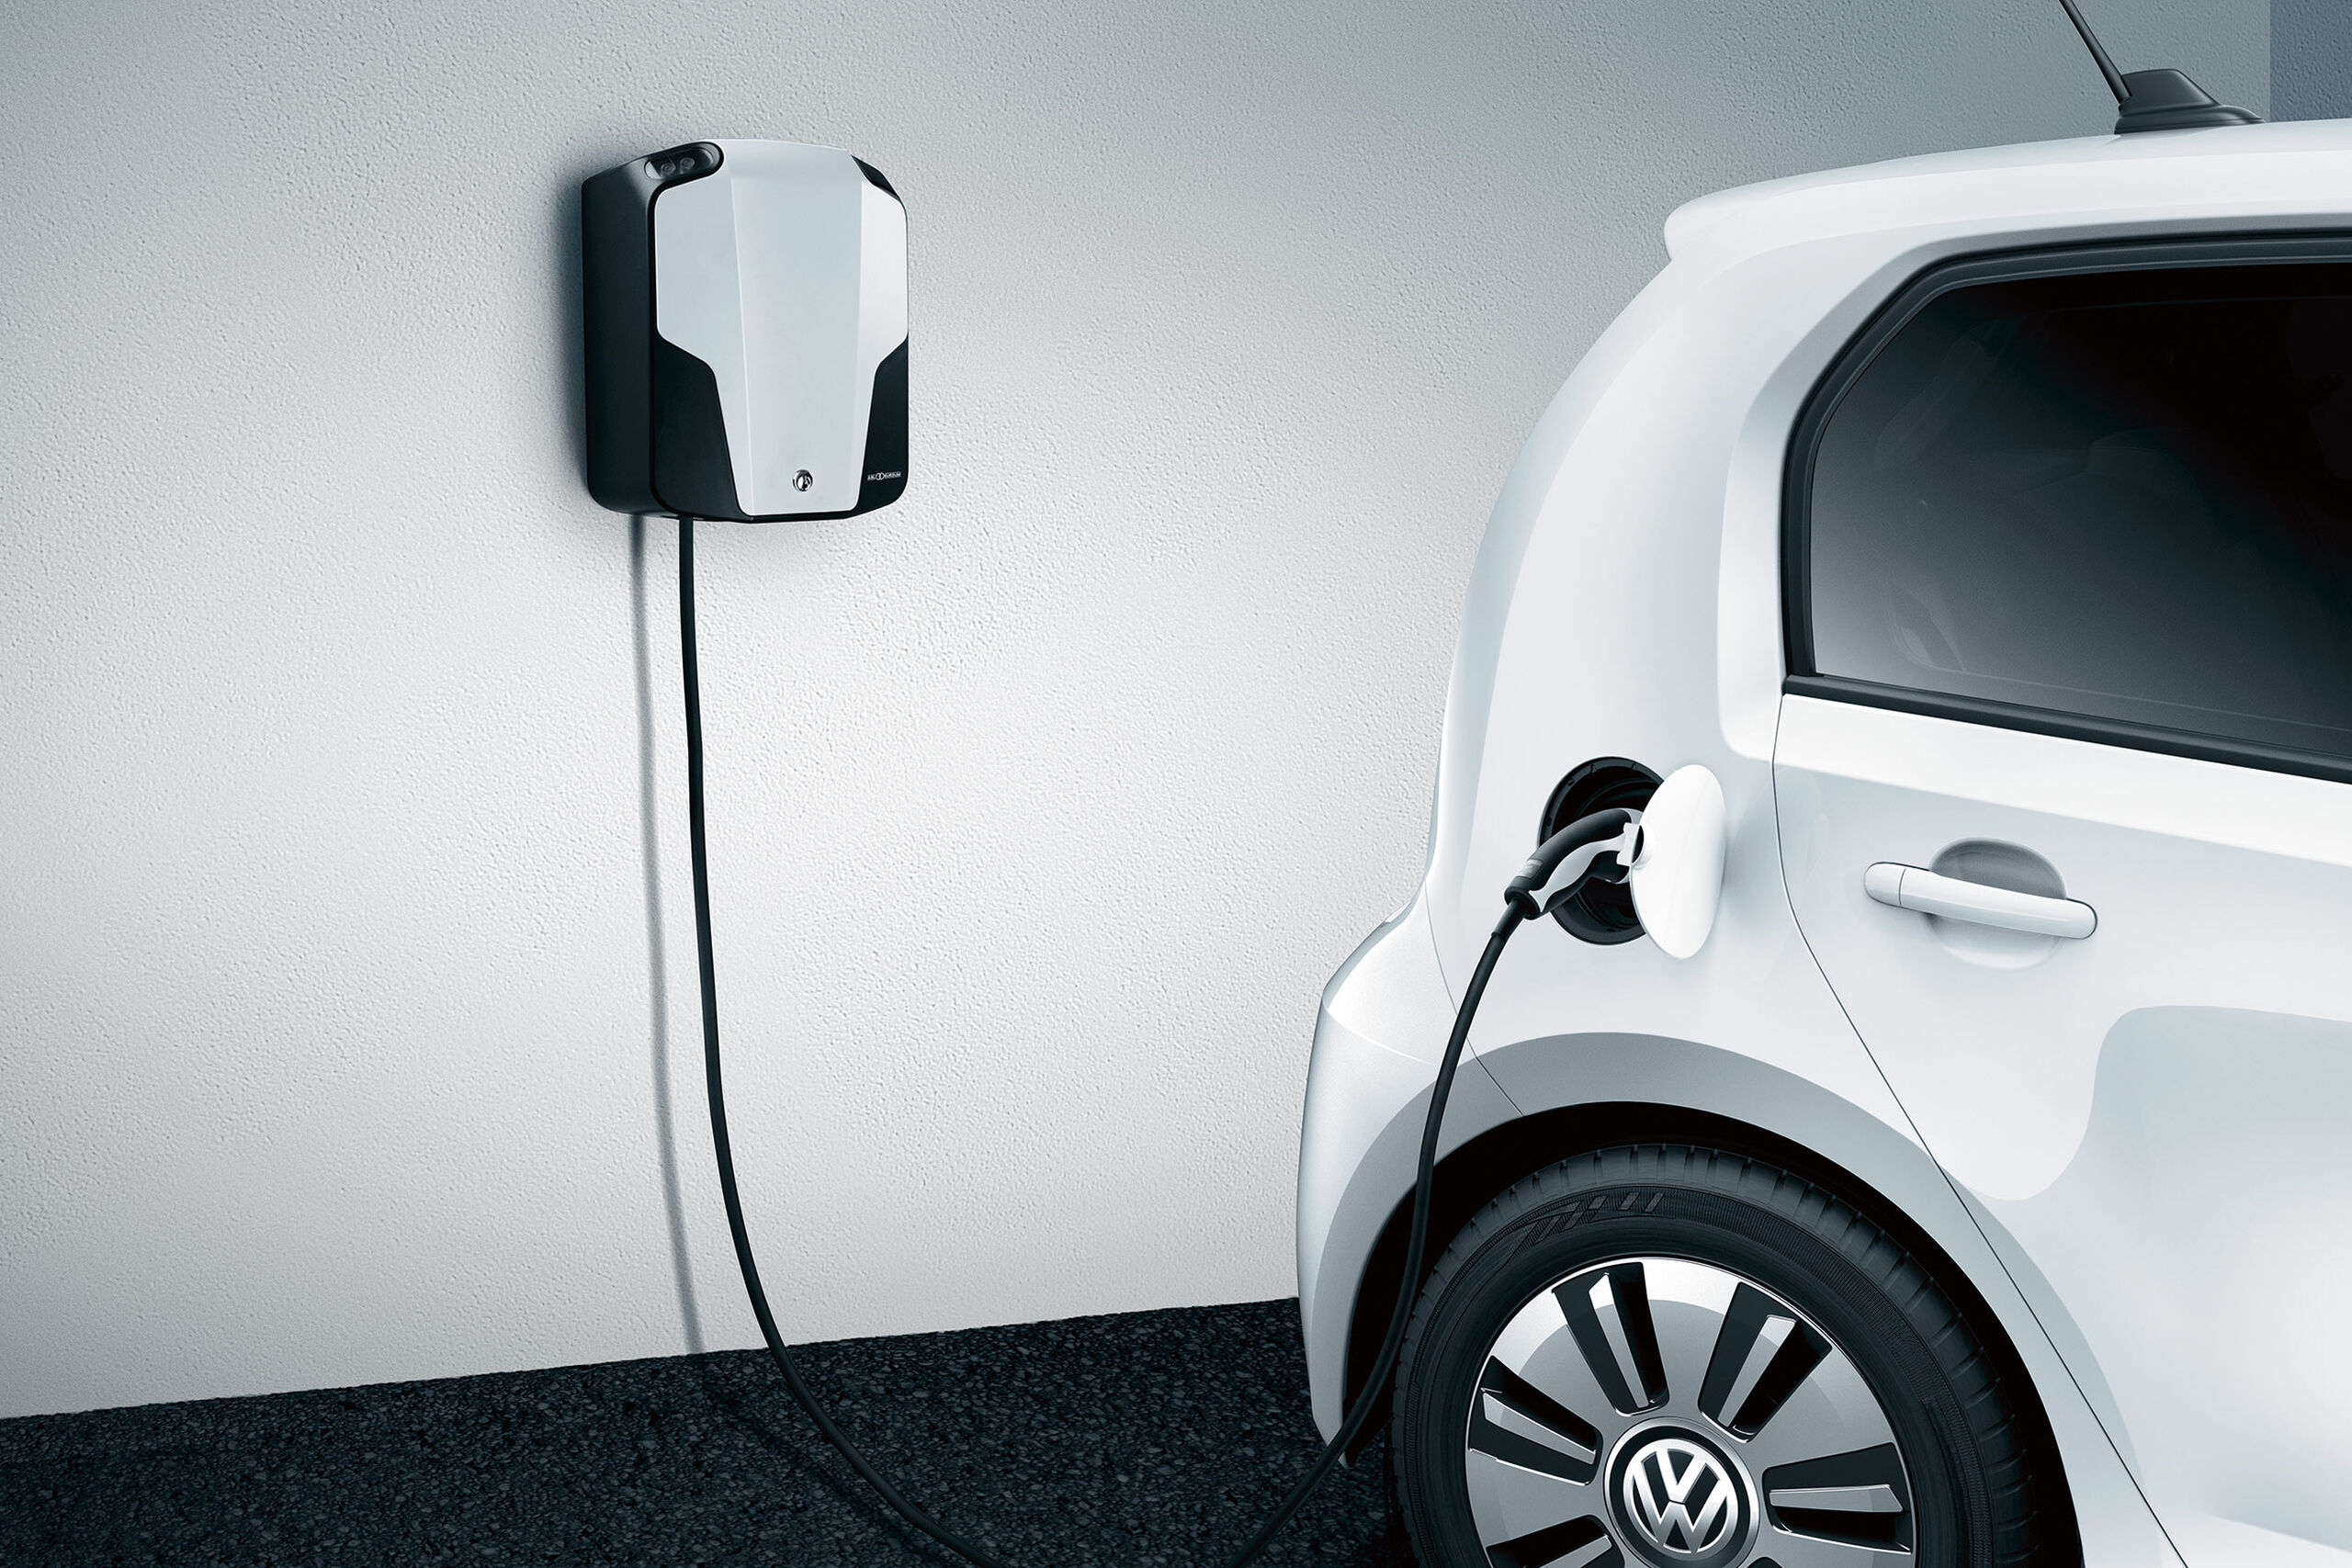 vw volkswagen elektro wallbox